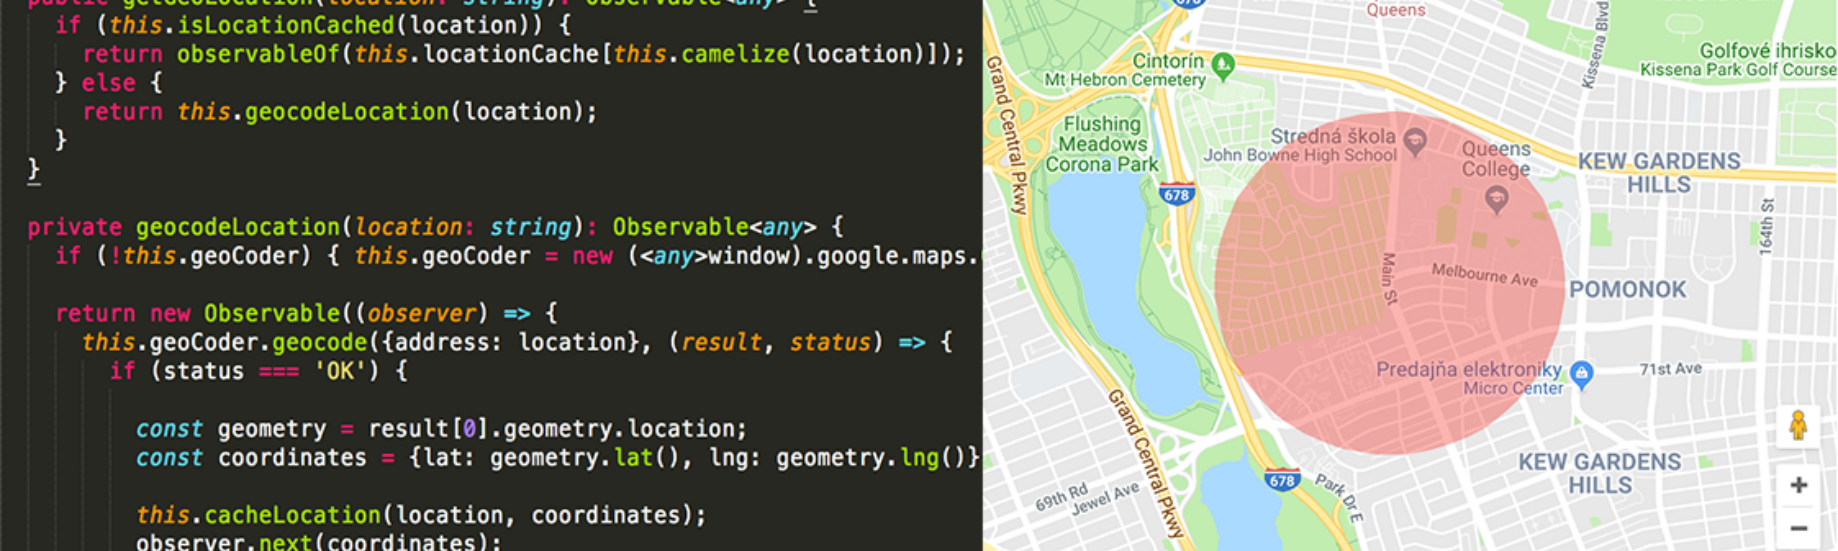 GOOGLE MAPS API GEOCODE PYTHON - How you can replicate